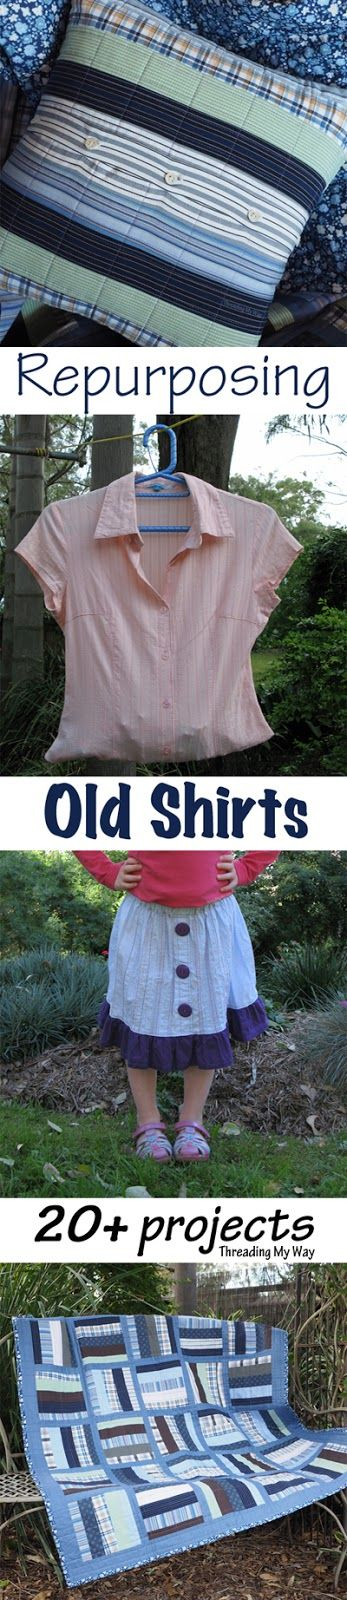 20+ free projects to sew from men's old shirts and women's blouses. Repurpose, refashion and upcycle pre-loved shirts. Threading My Way